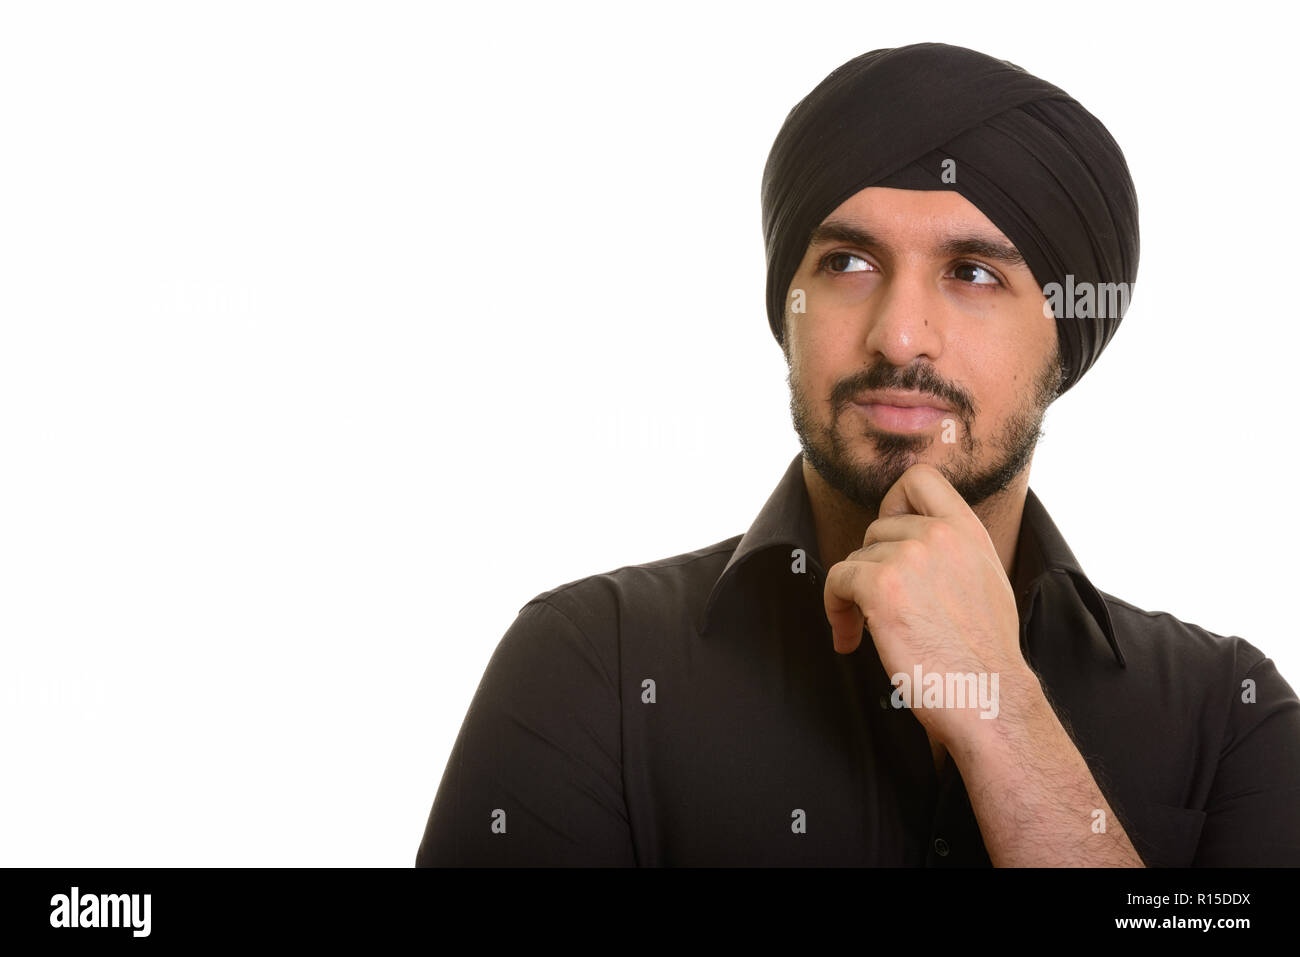 Portrait of young Indian Sikh man thinking - Stock Image